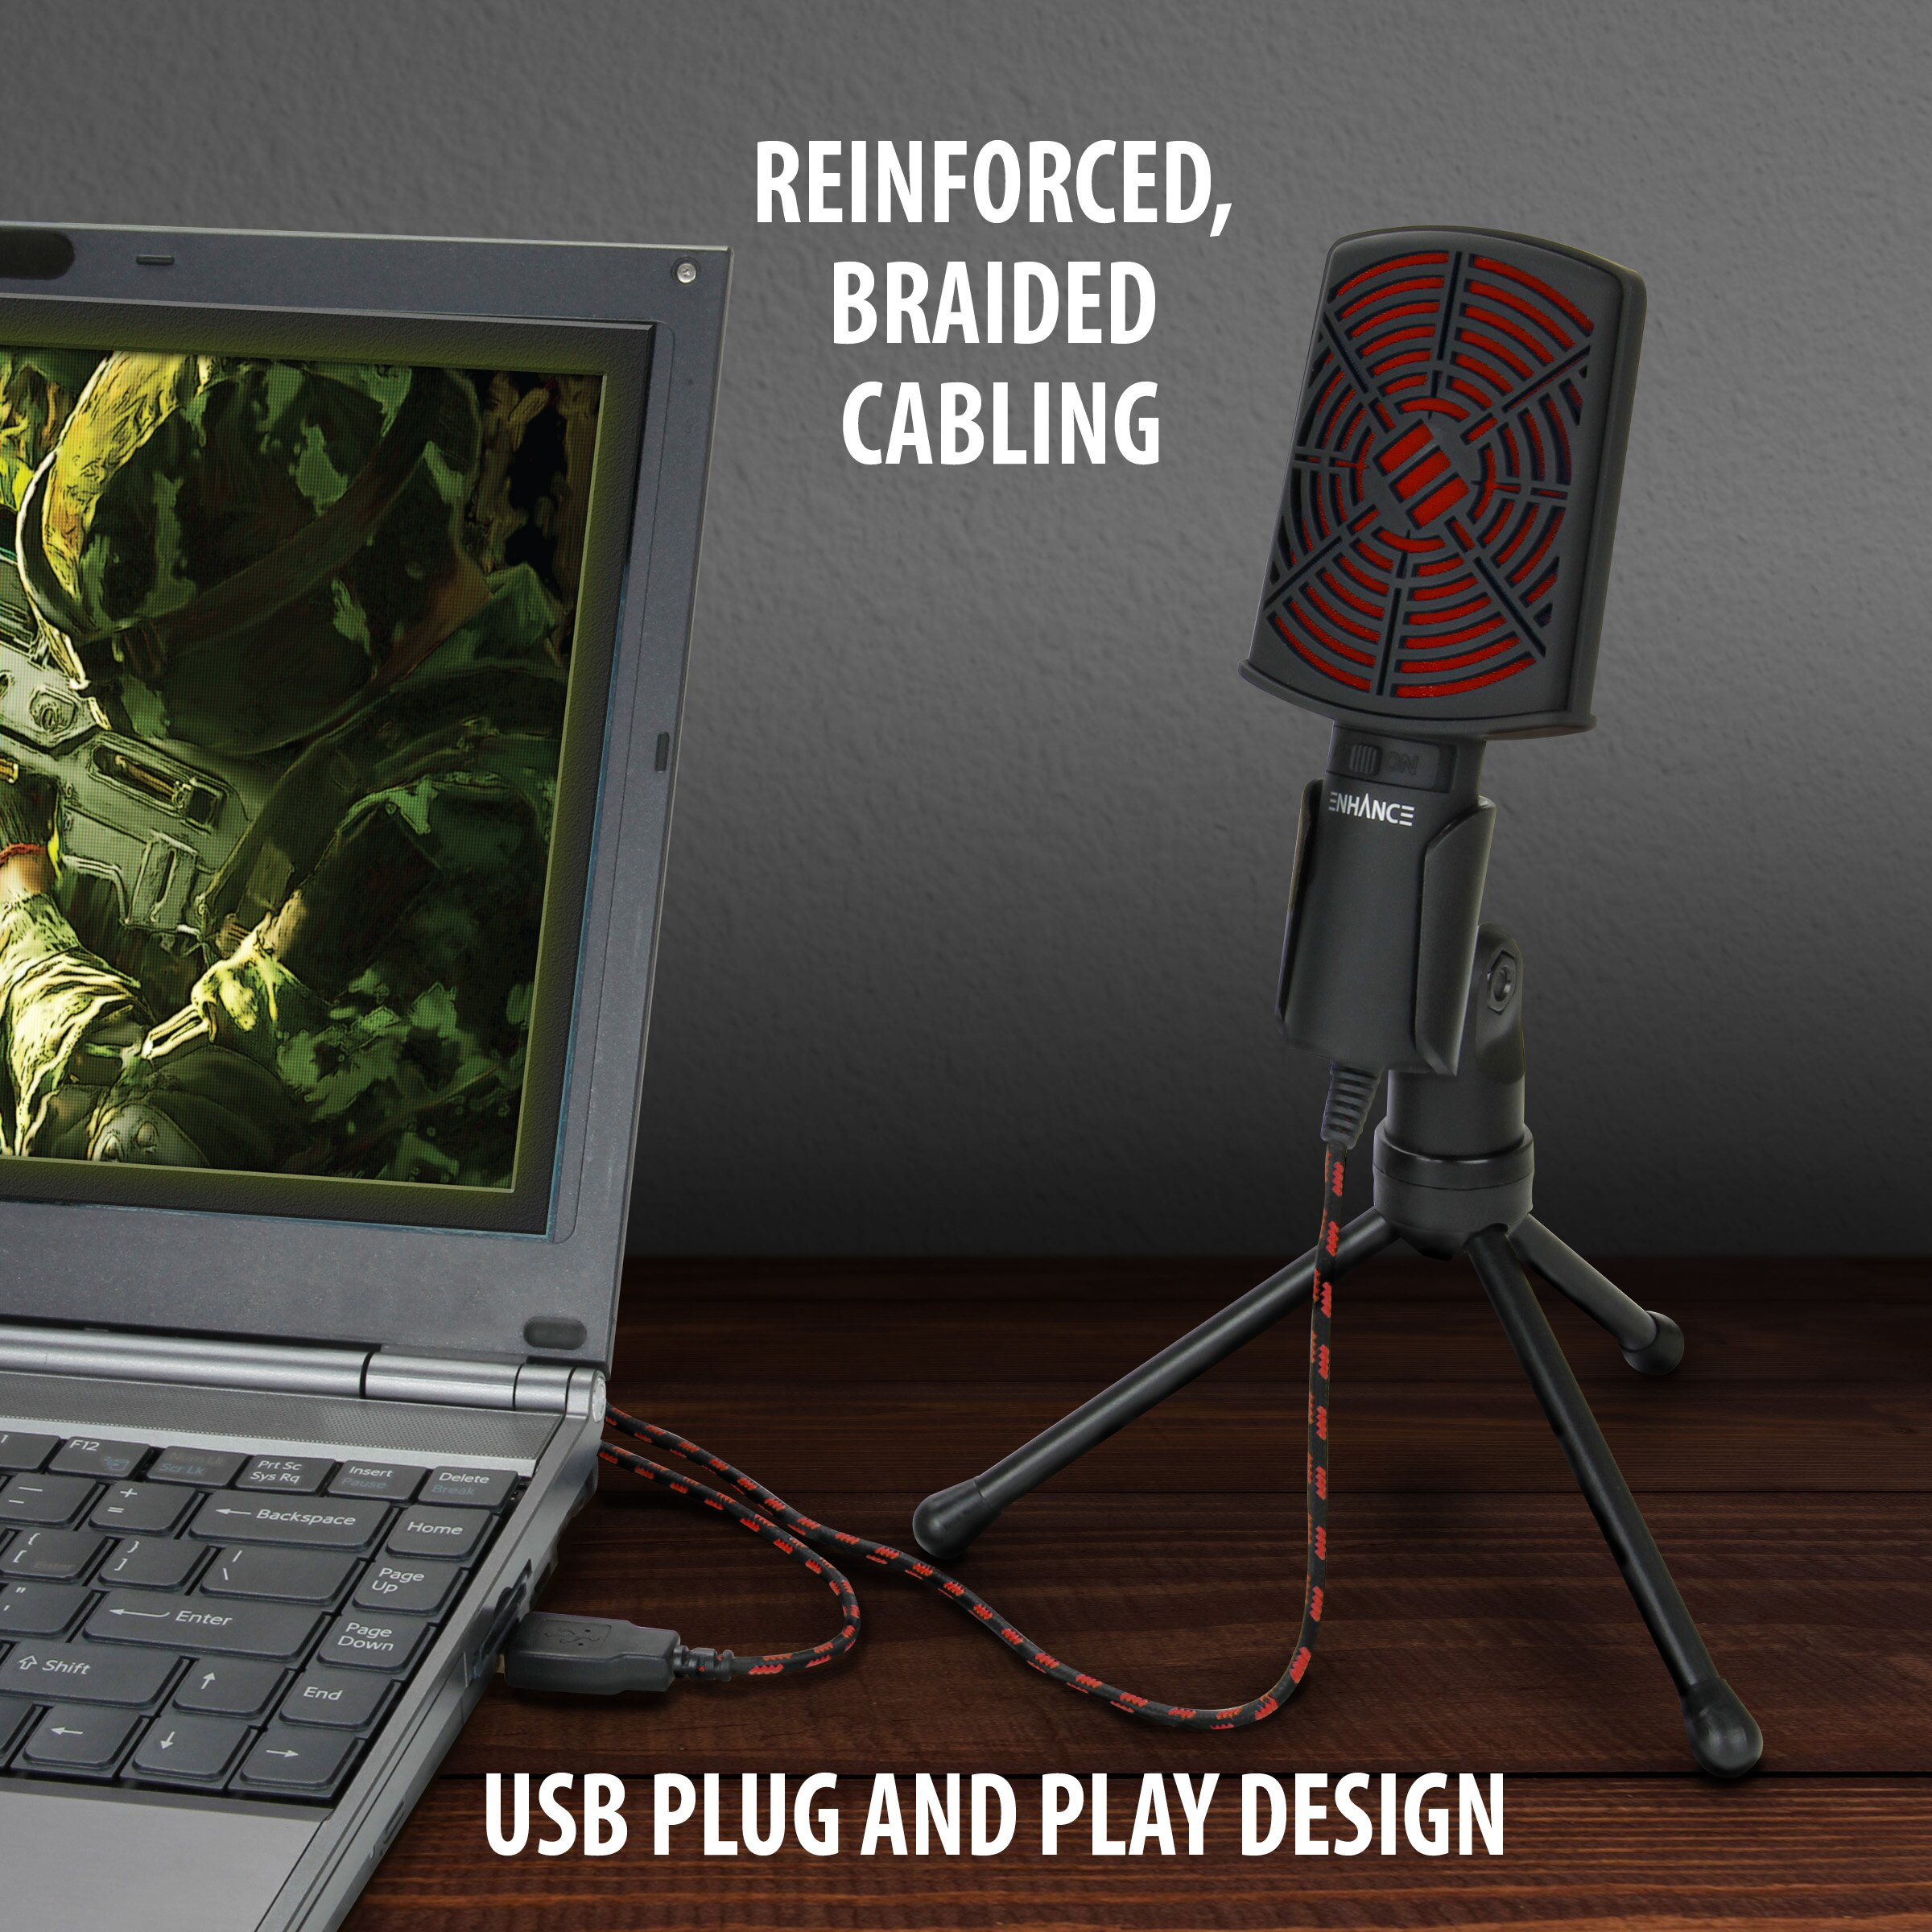 ENHANCE USB Condenser Microphone for PC / Laptop Gaming with Adjustable Desktop Stand 5